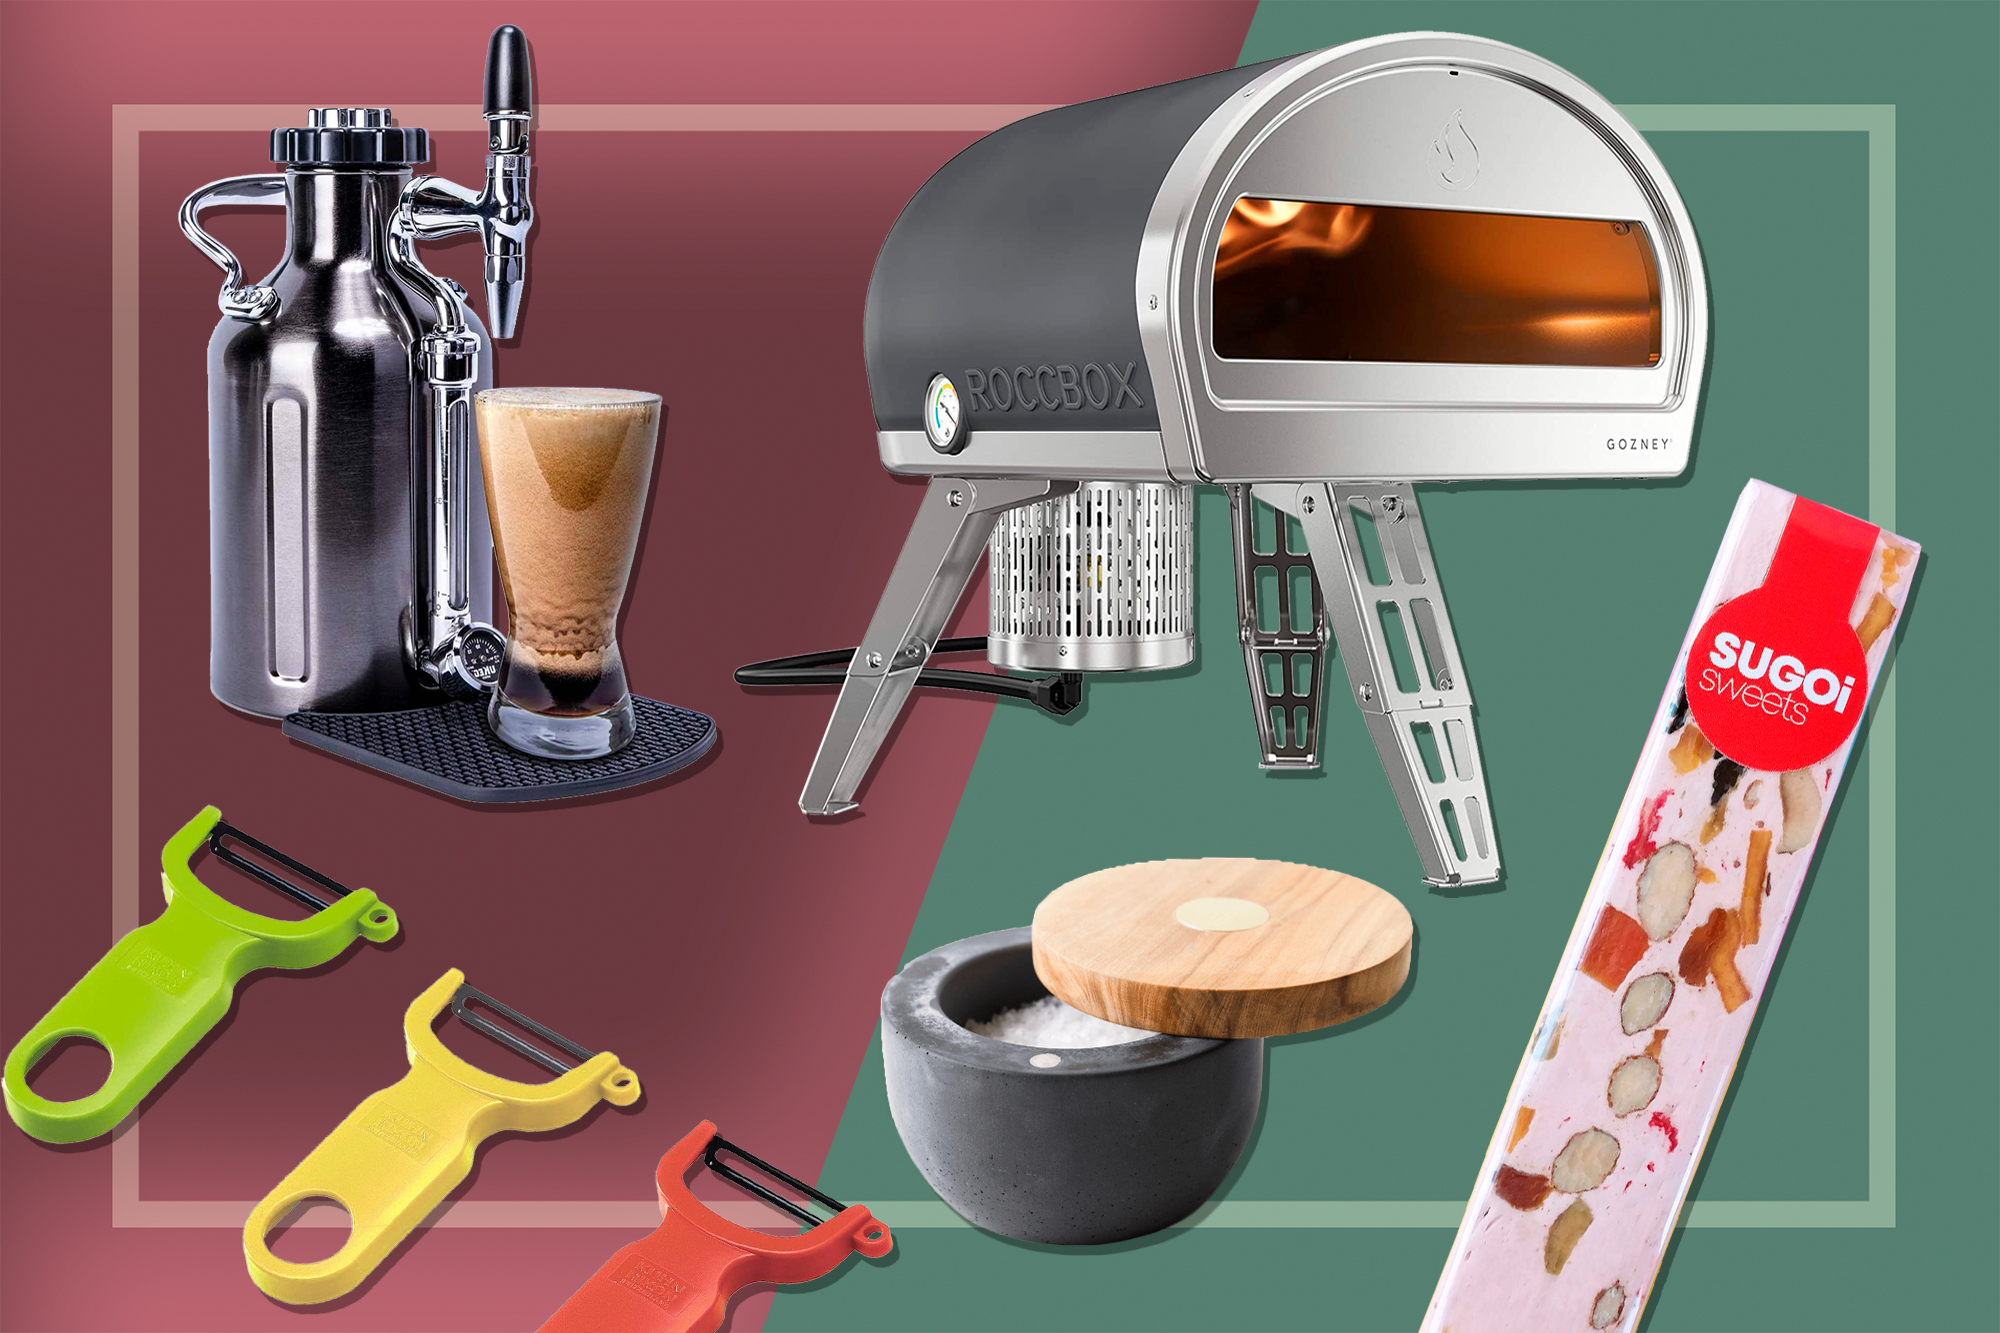 Vegetable peelers, salt keeper, nougat, pizza oven, and nitro cold brew coffee maker